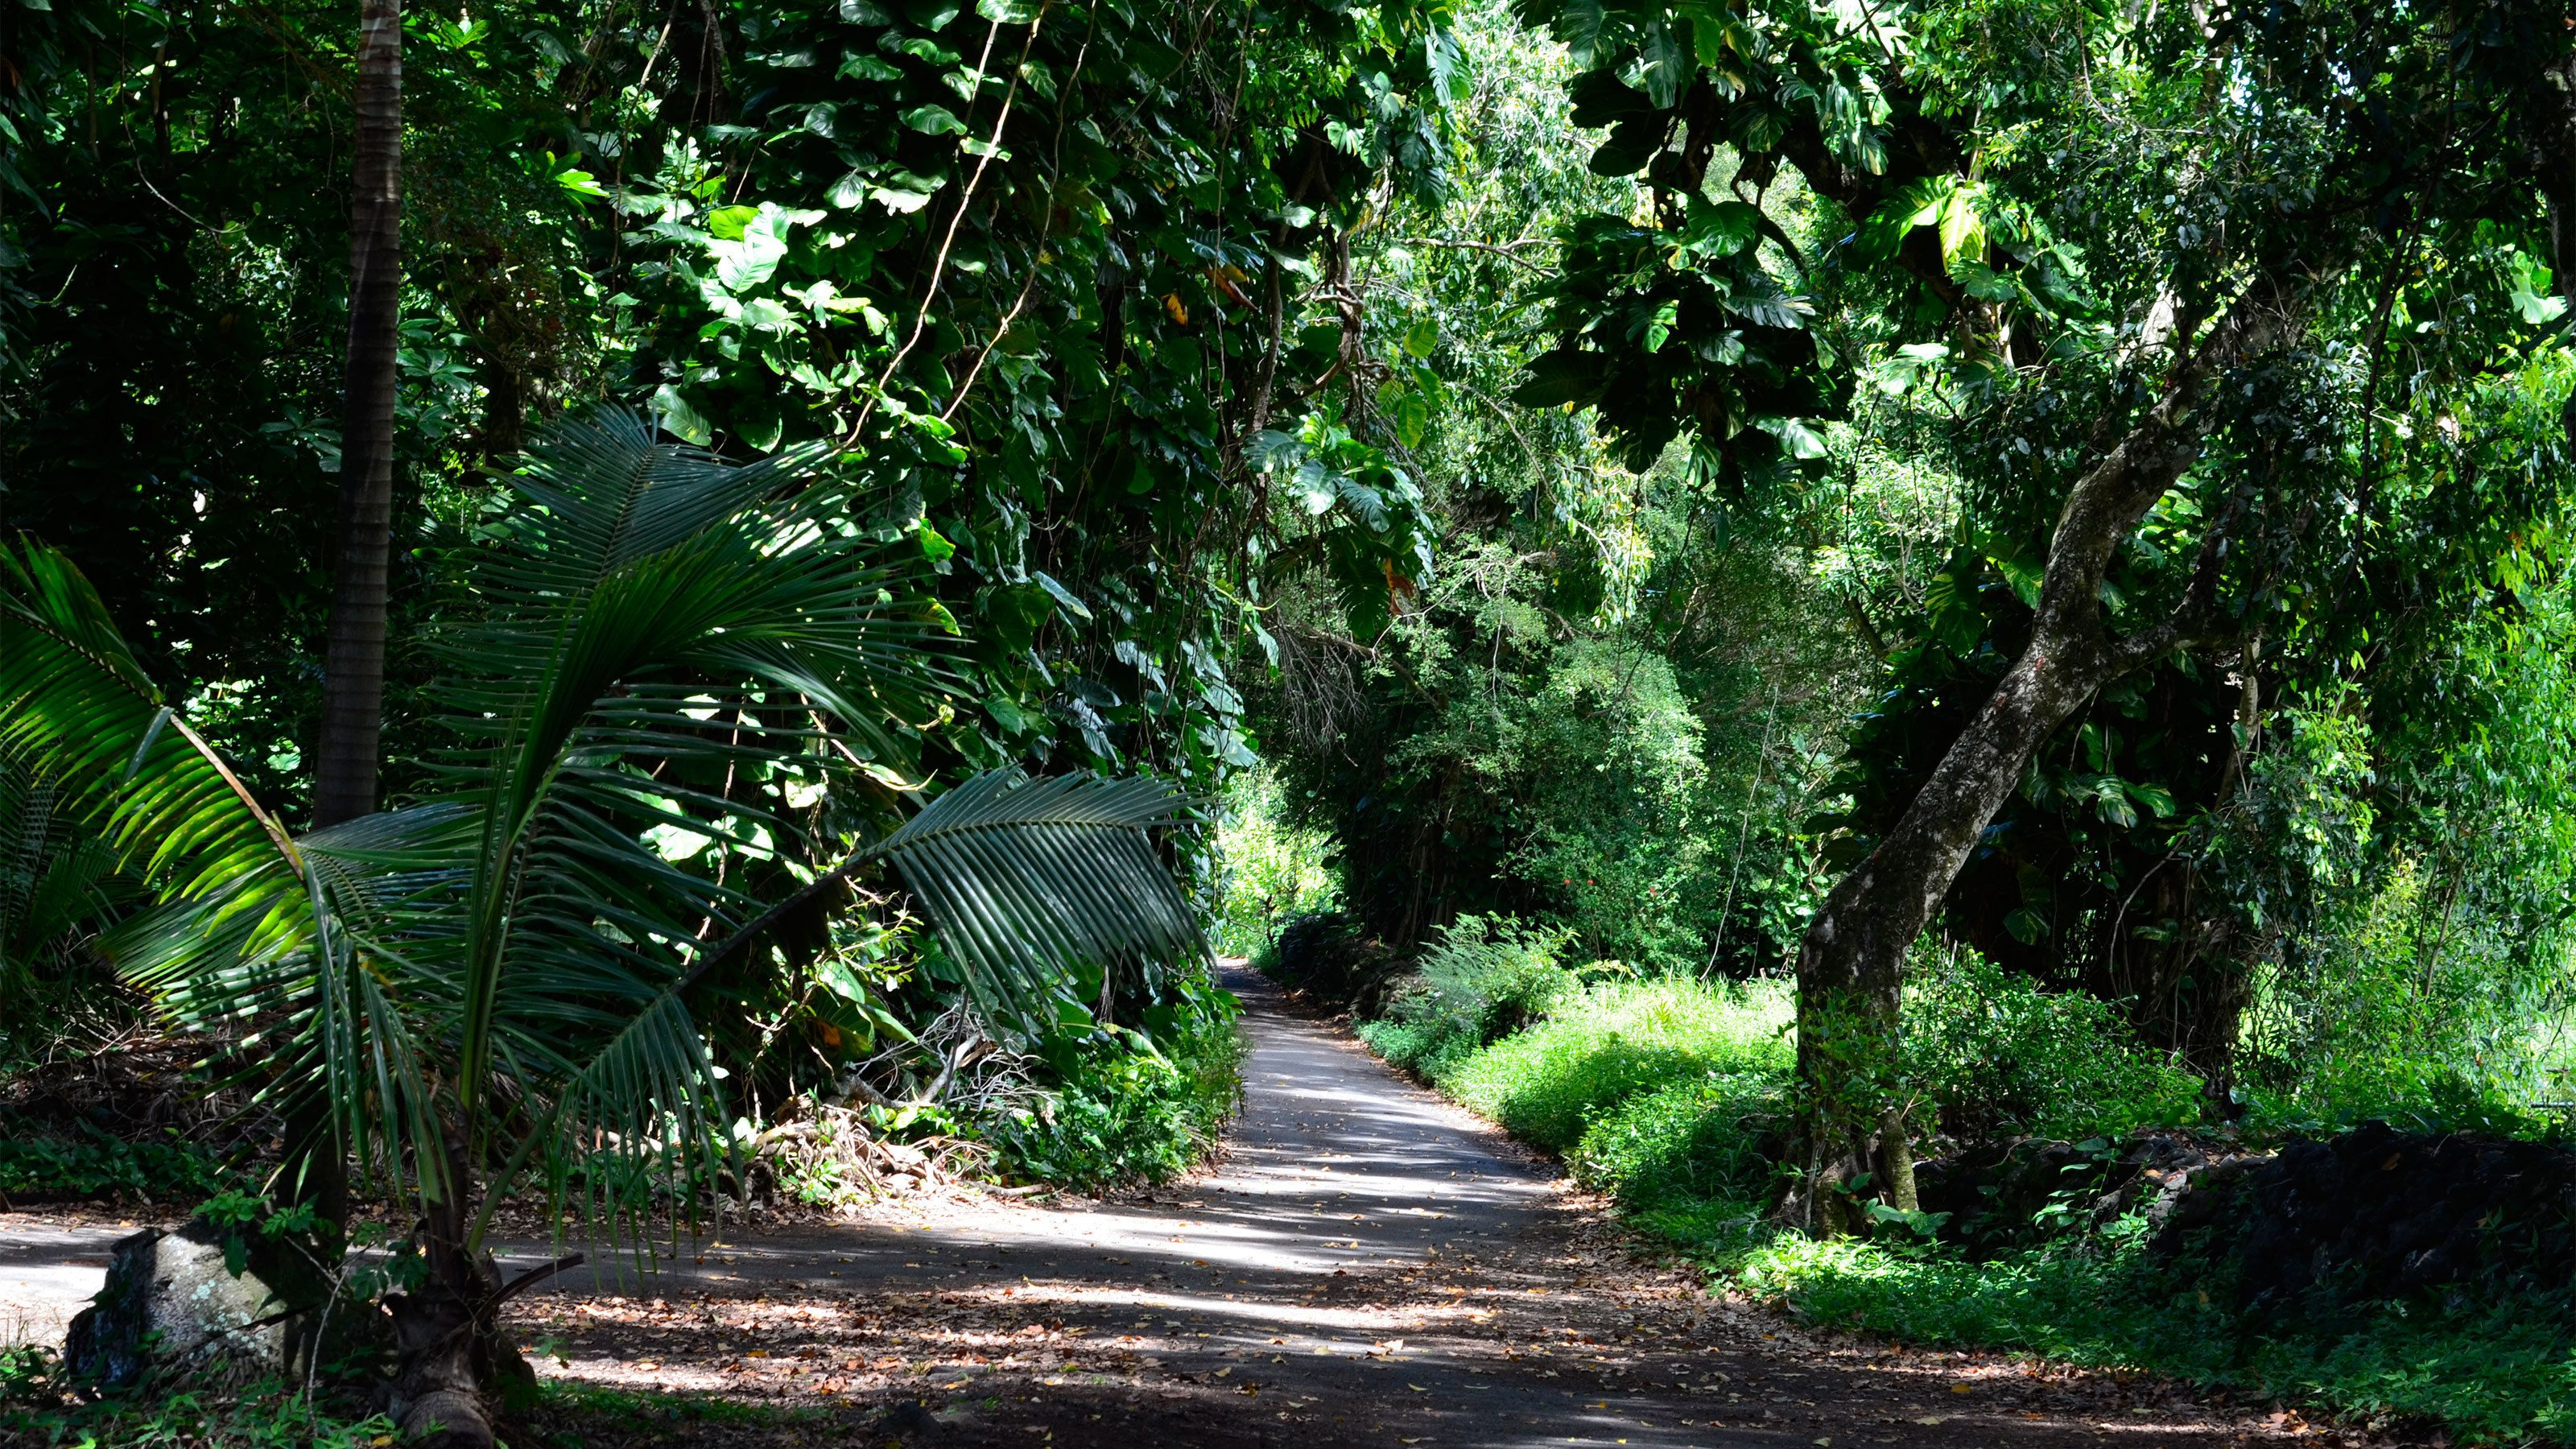 Narrow road through the forest in Hana